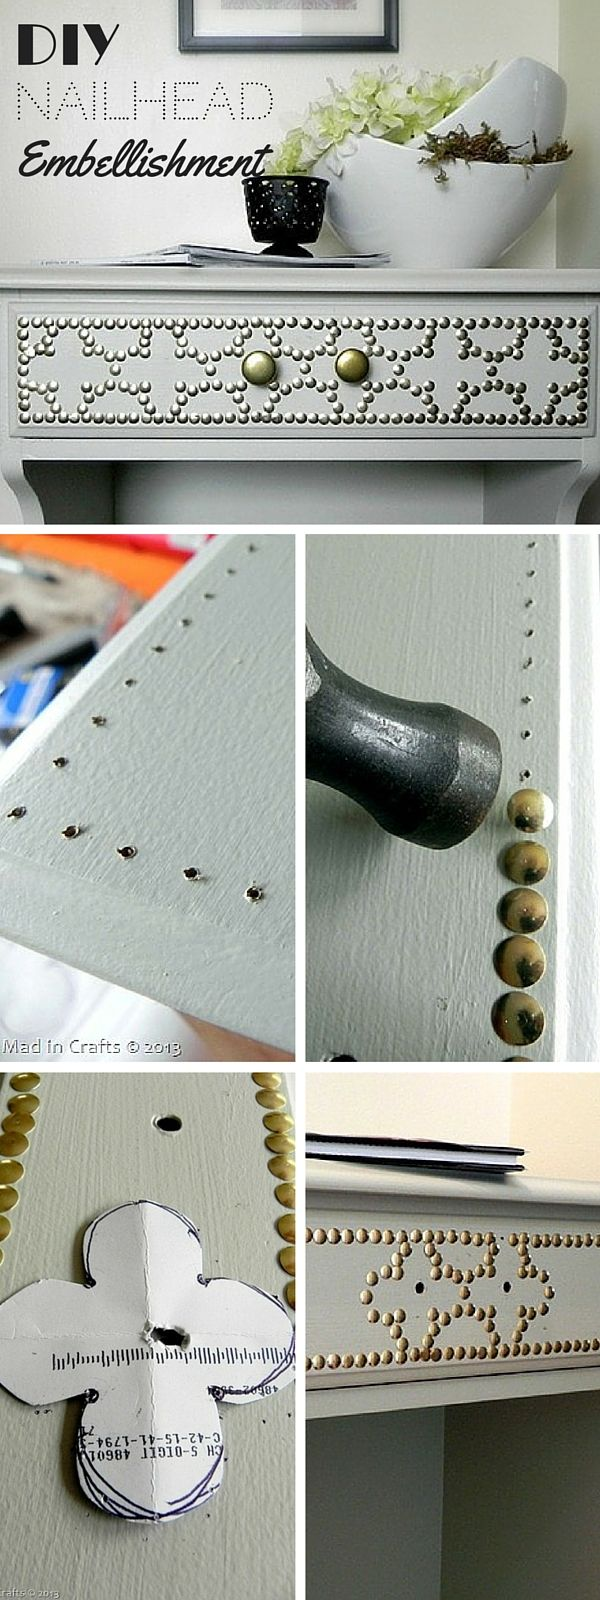 Check out the tutorial: #DIY Nailhead Embellishment #crafts #homedecor